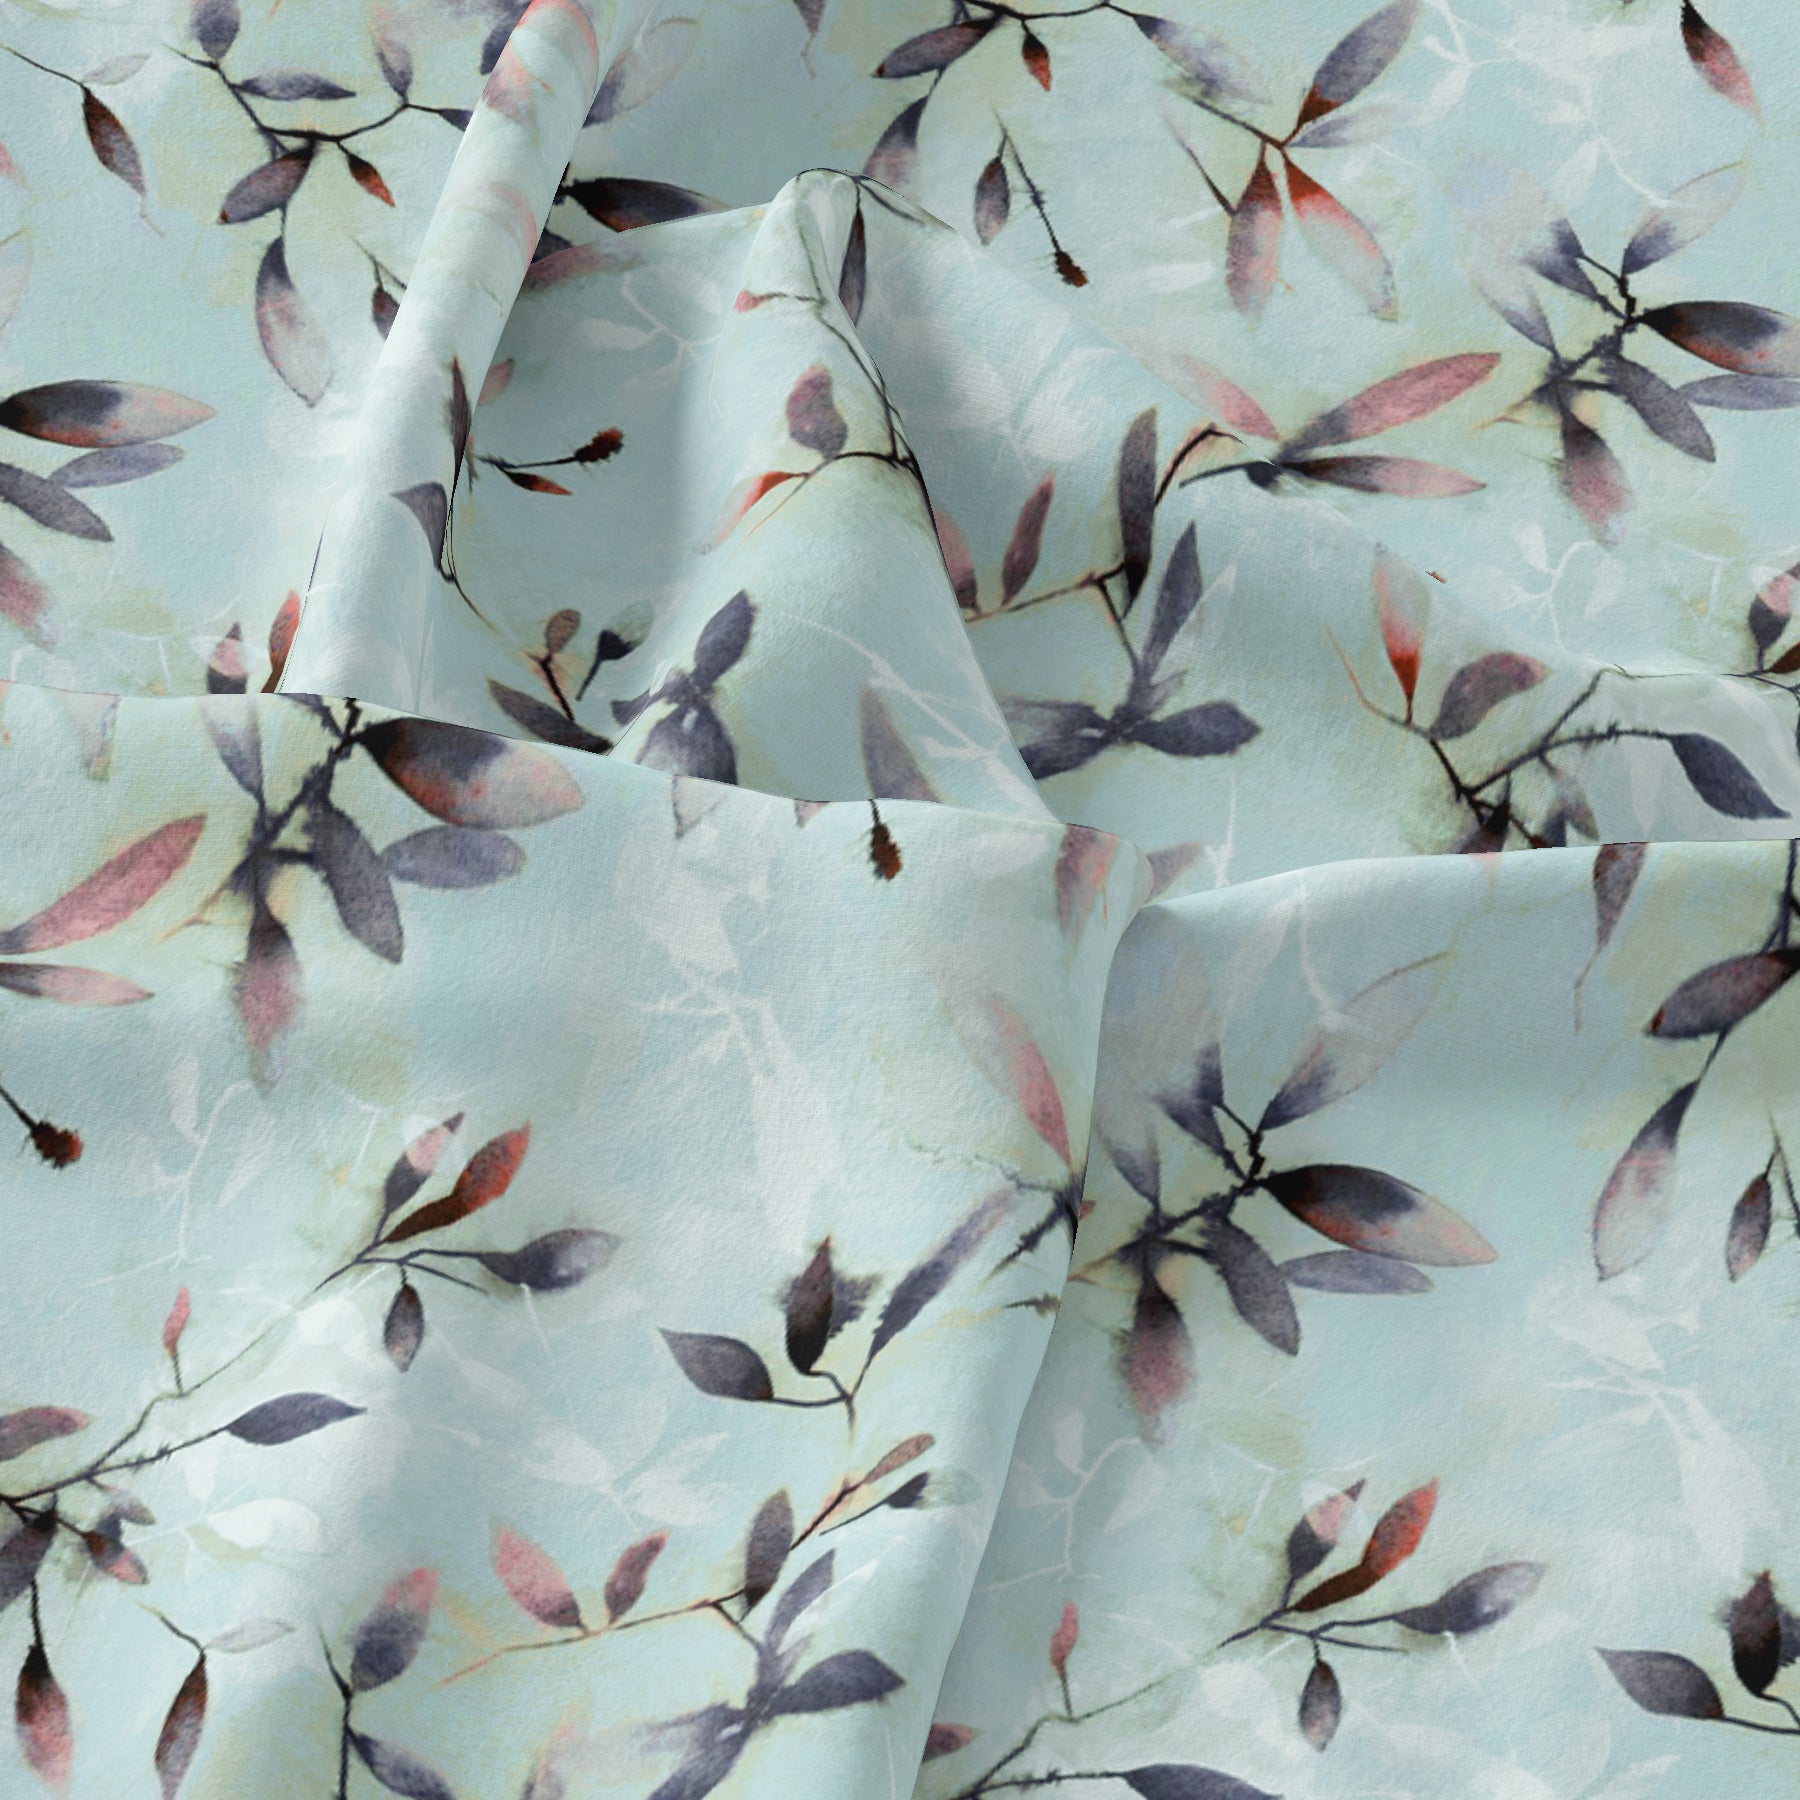 Bluish Thin And Light Leaves Digital Printed Fabric - Tusser Silk